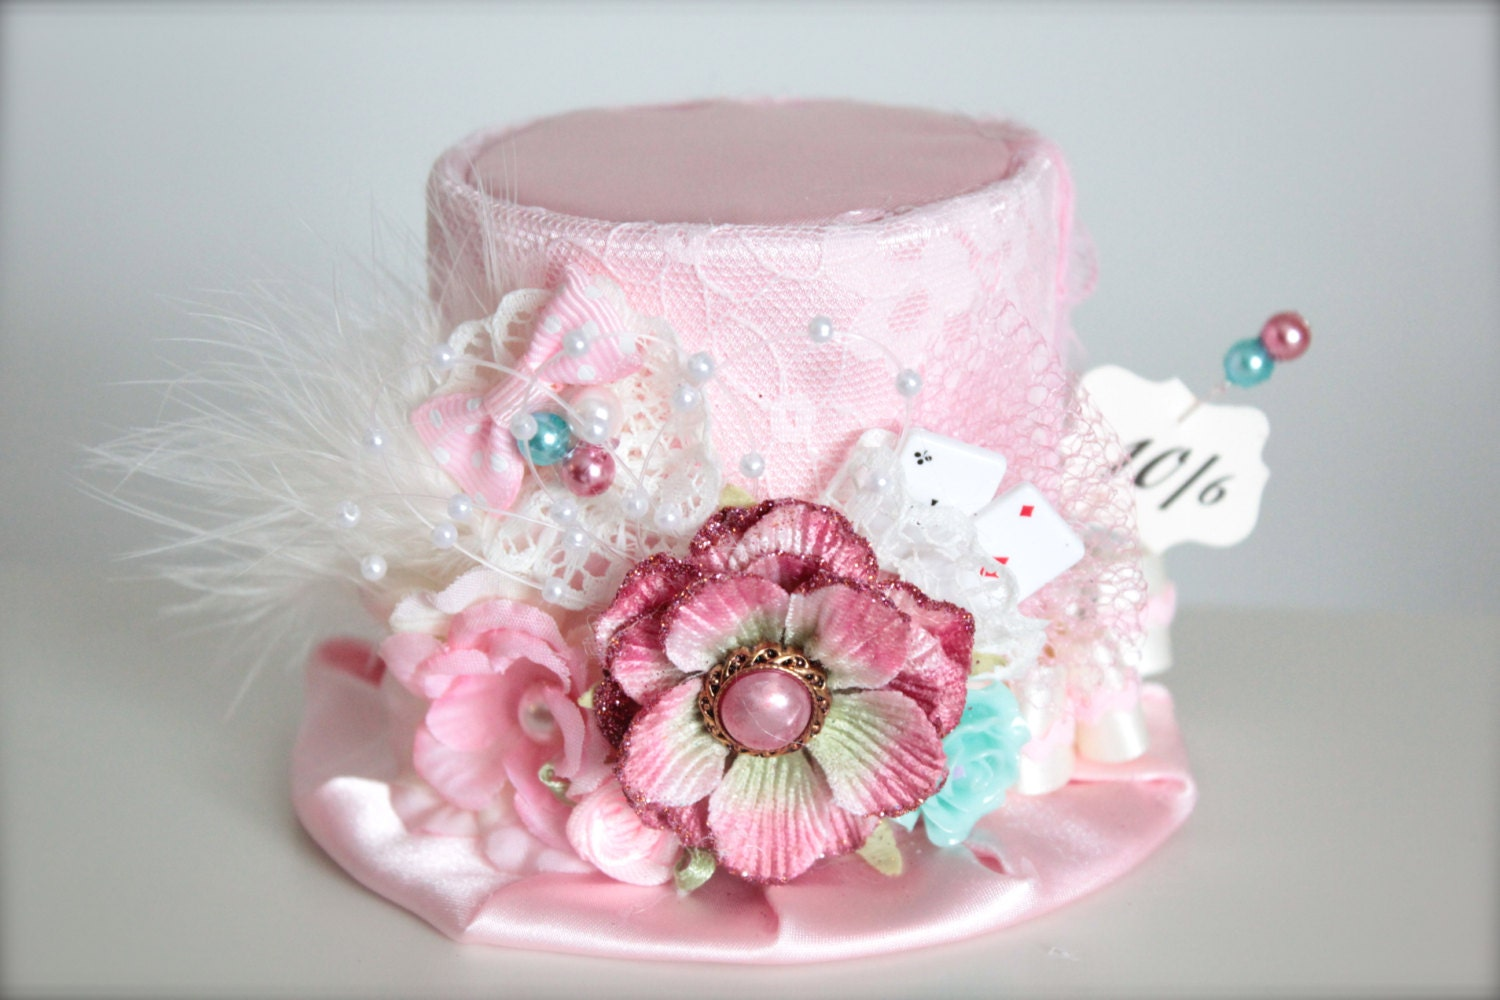 Where Can I Order An Alice In Wonderland Cake